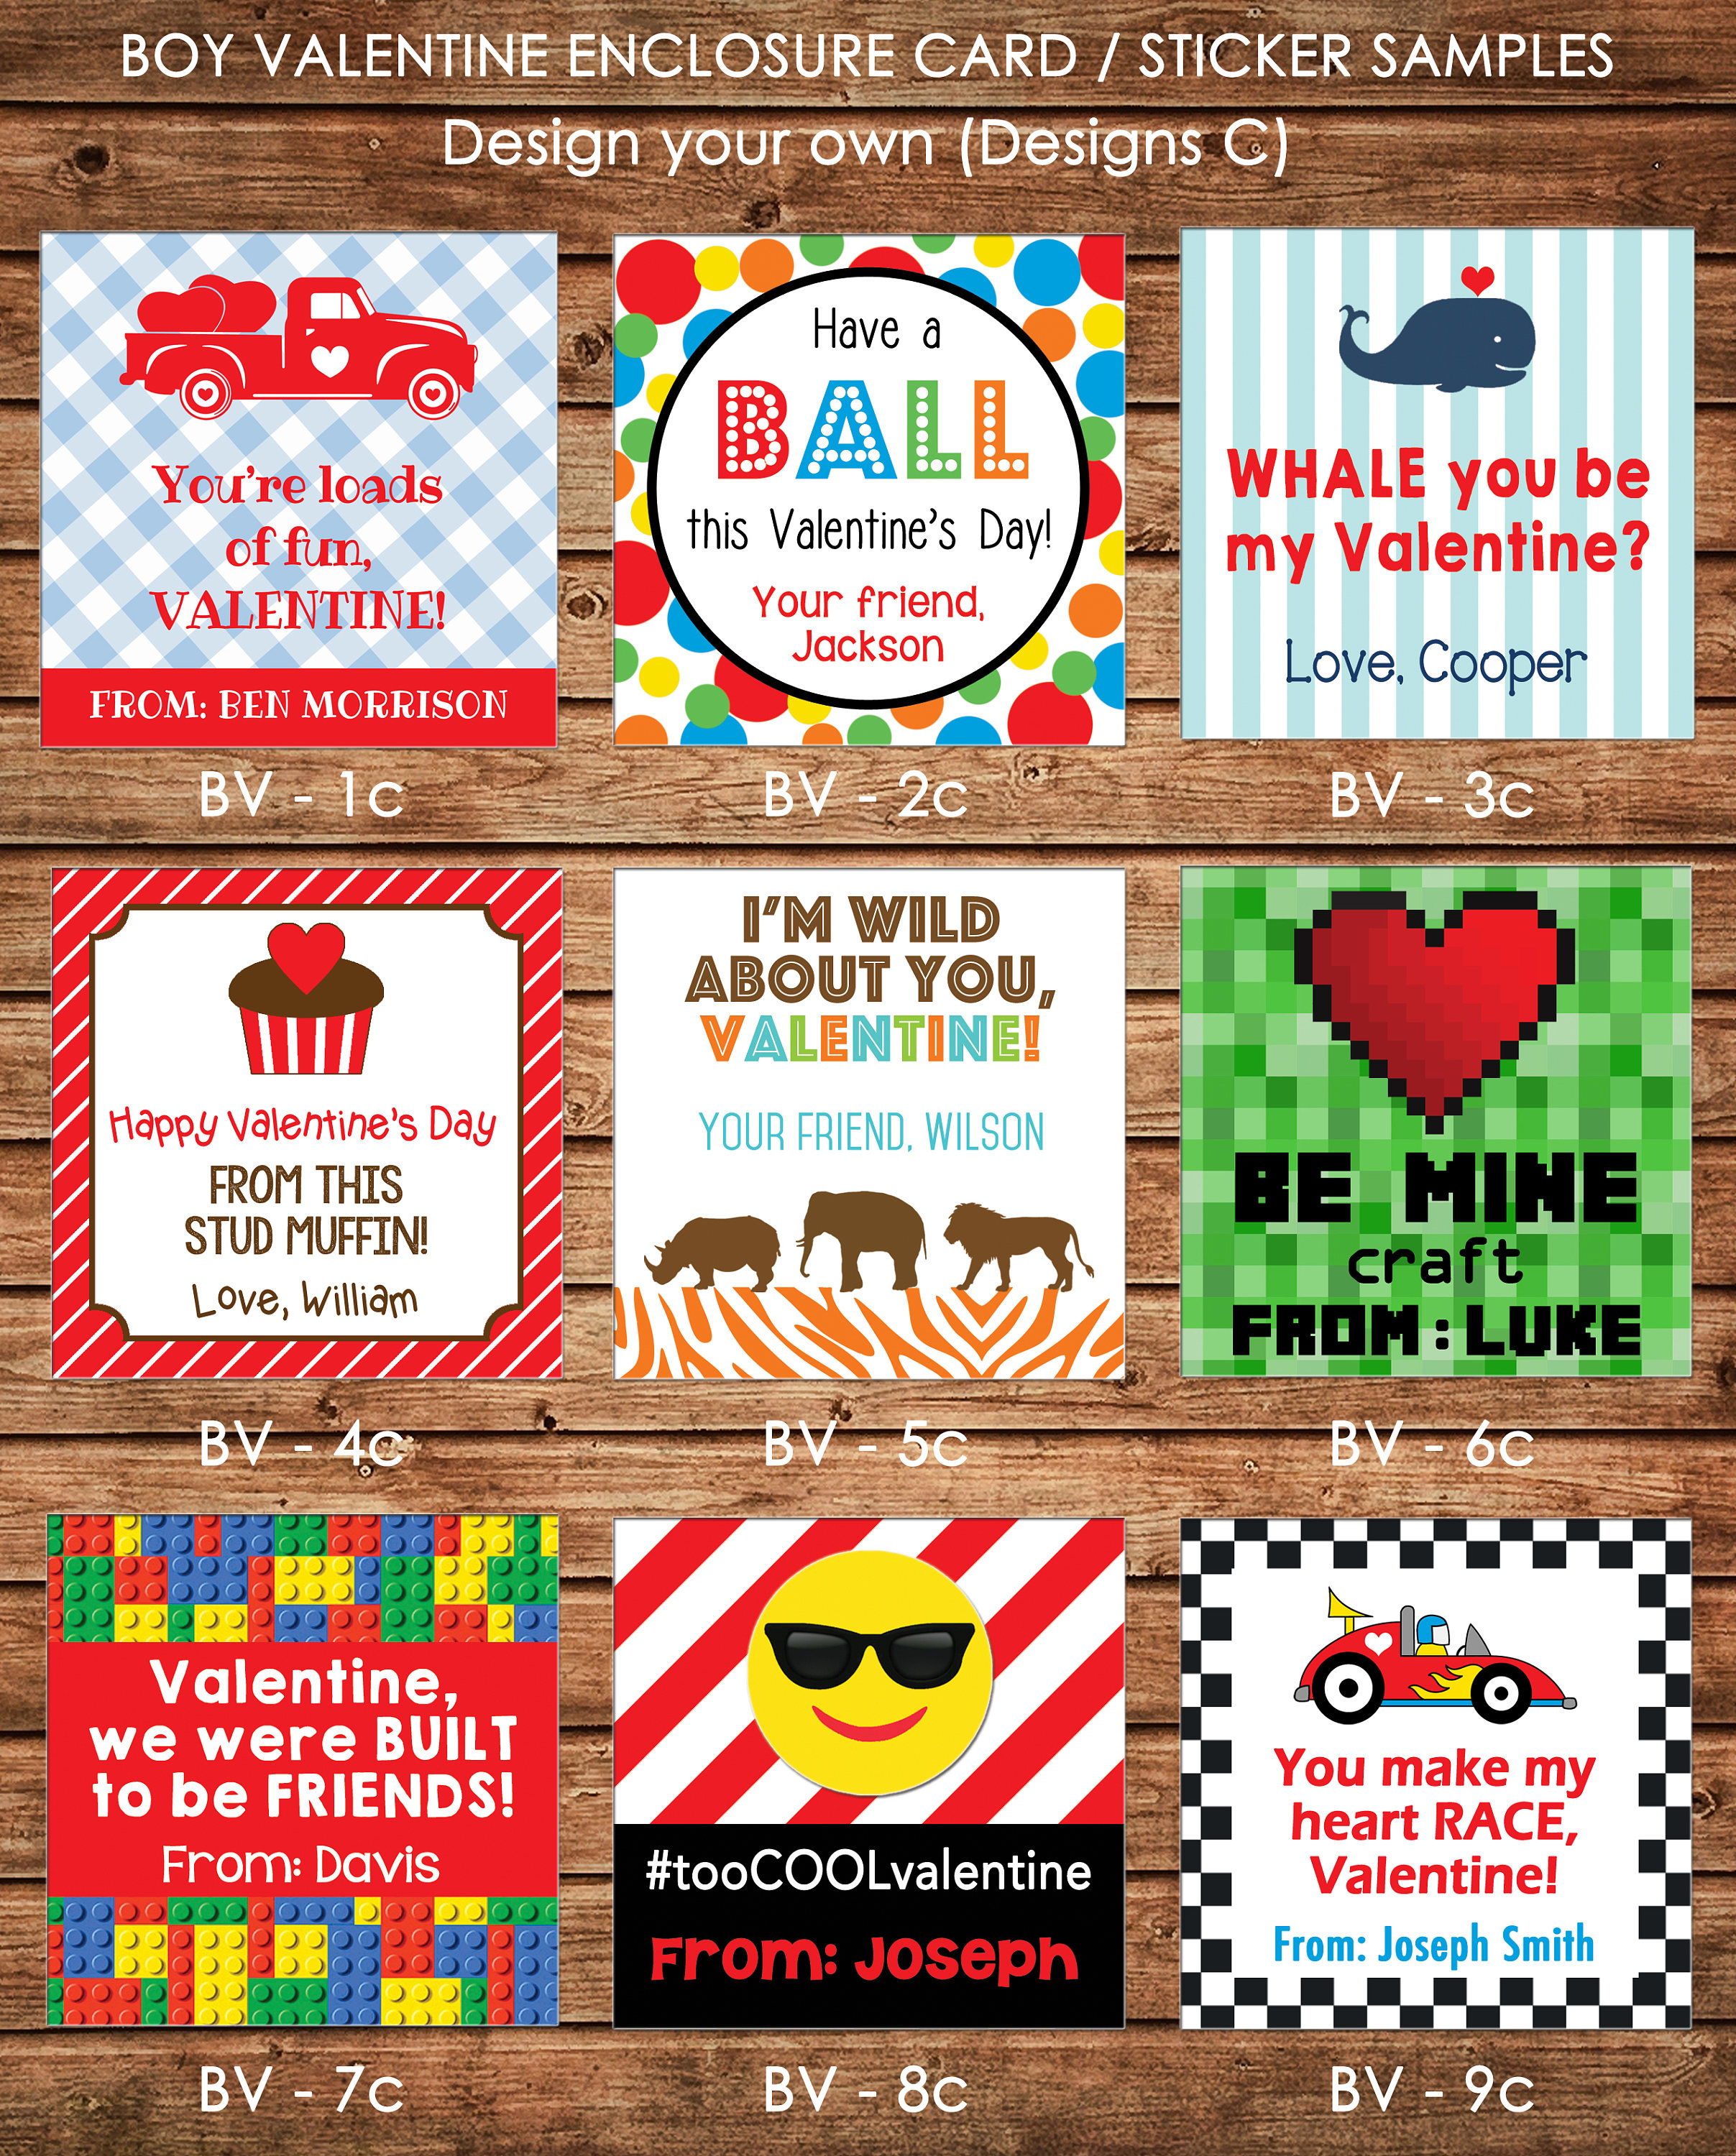 24 square personalized boy valentine enclosure cards gift stickers